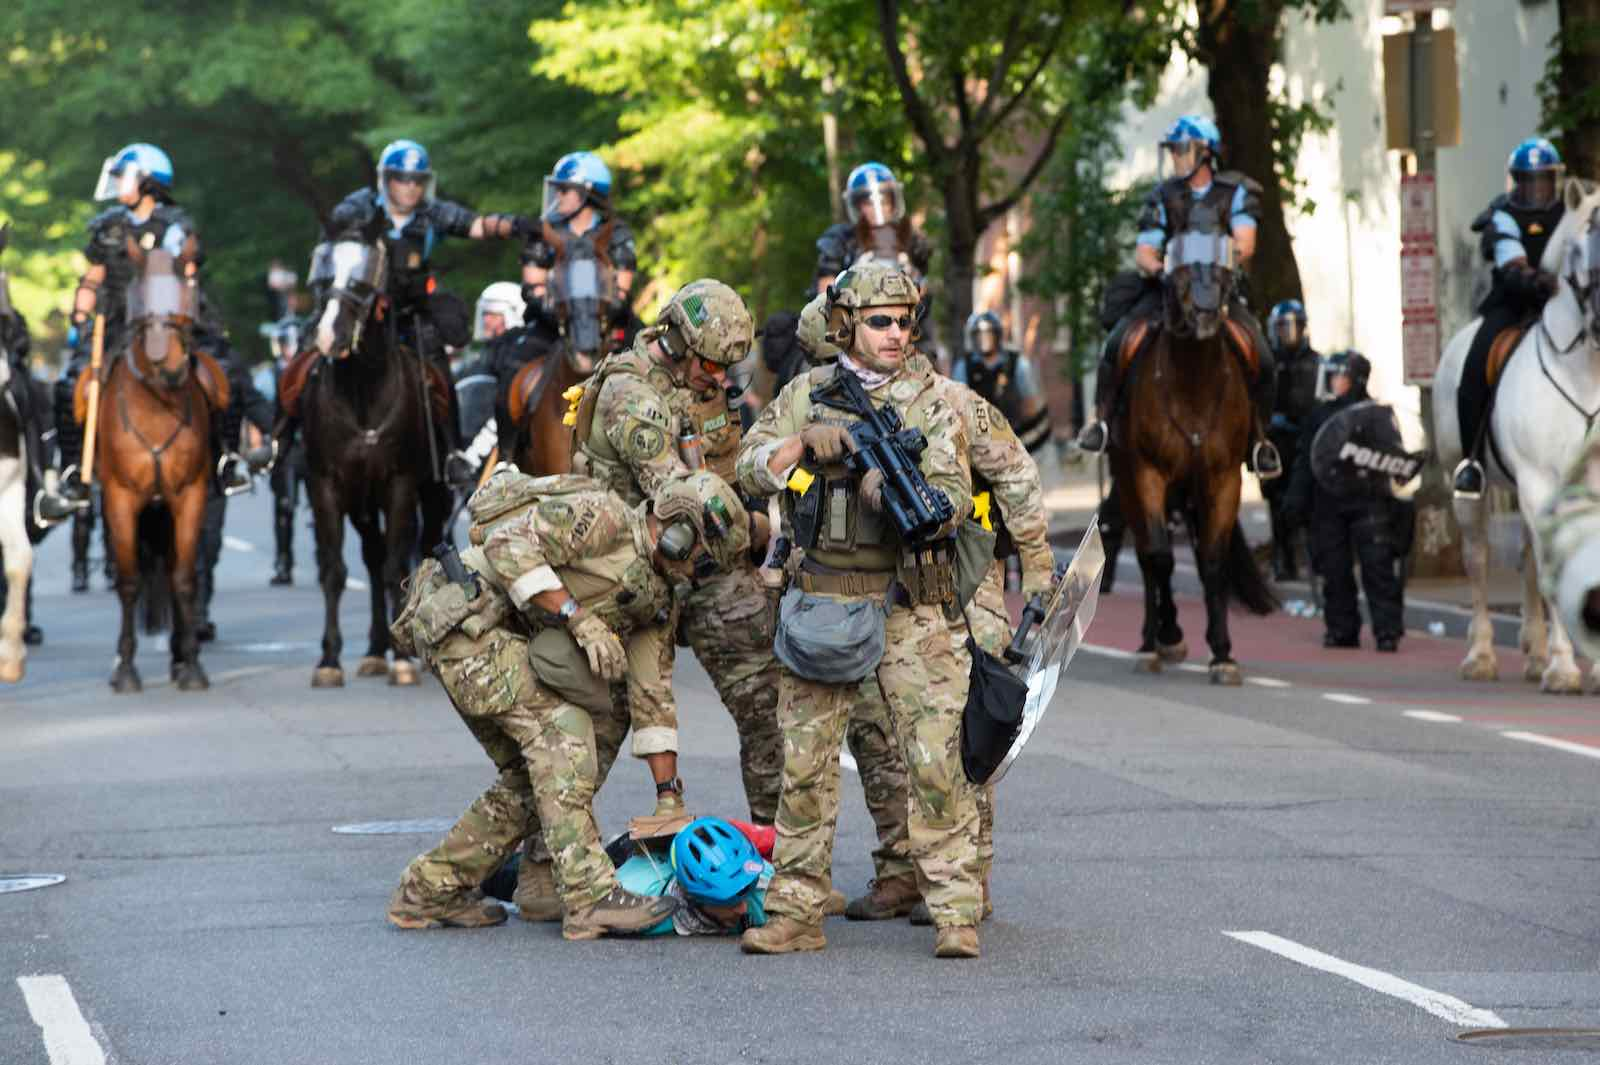 US Marshals restrain a protestor near the White House, 1 June (Roberto Schmidt/AFP via Getty Images)